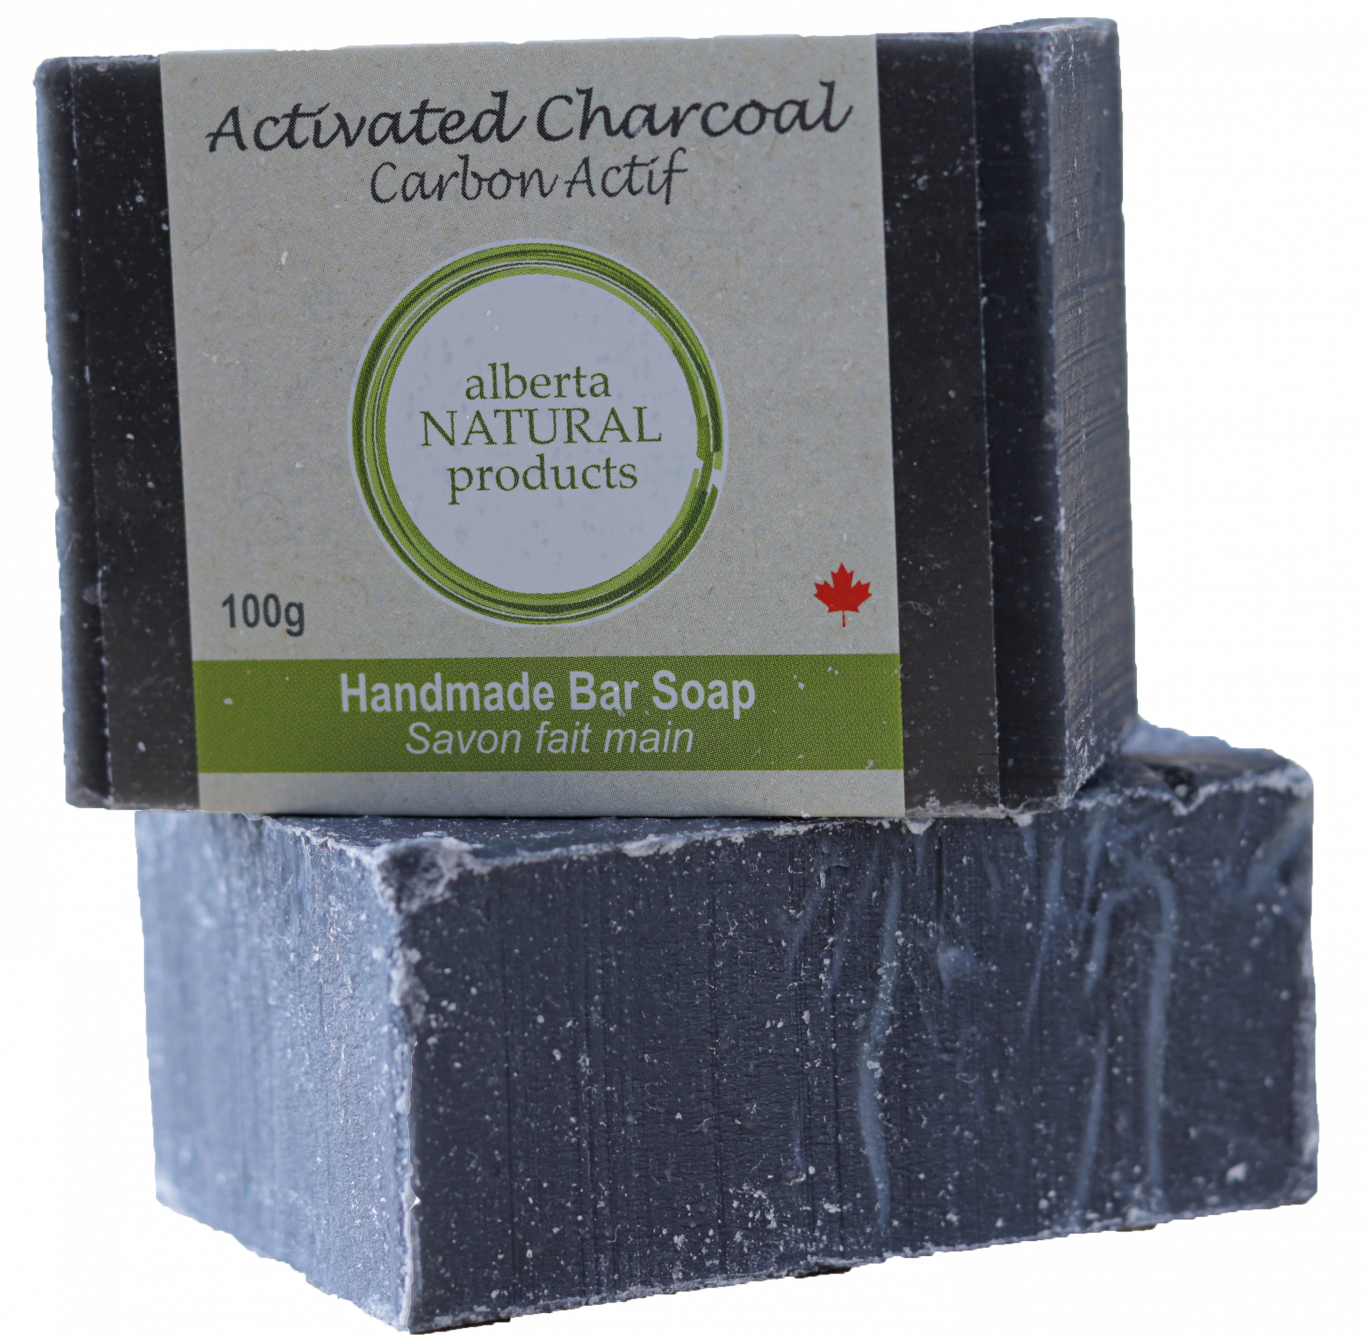 Activated Charcoal Duo_ 300 dpi